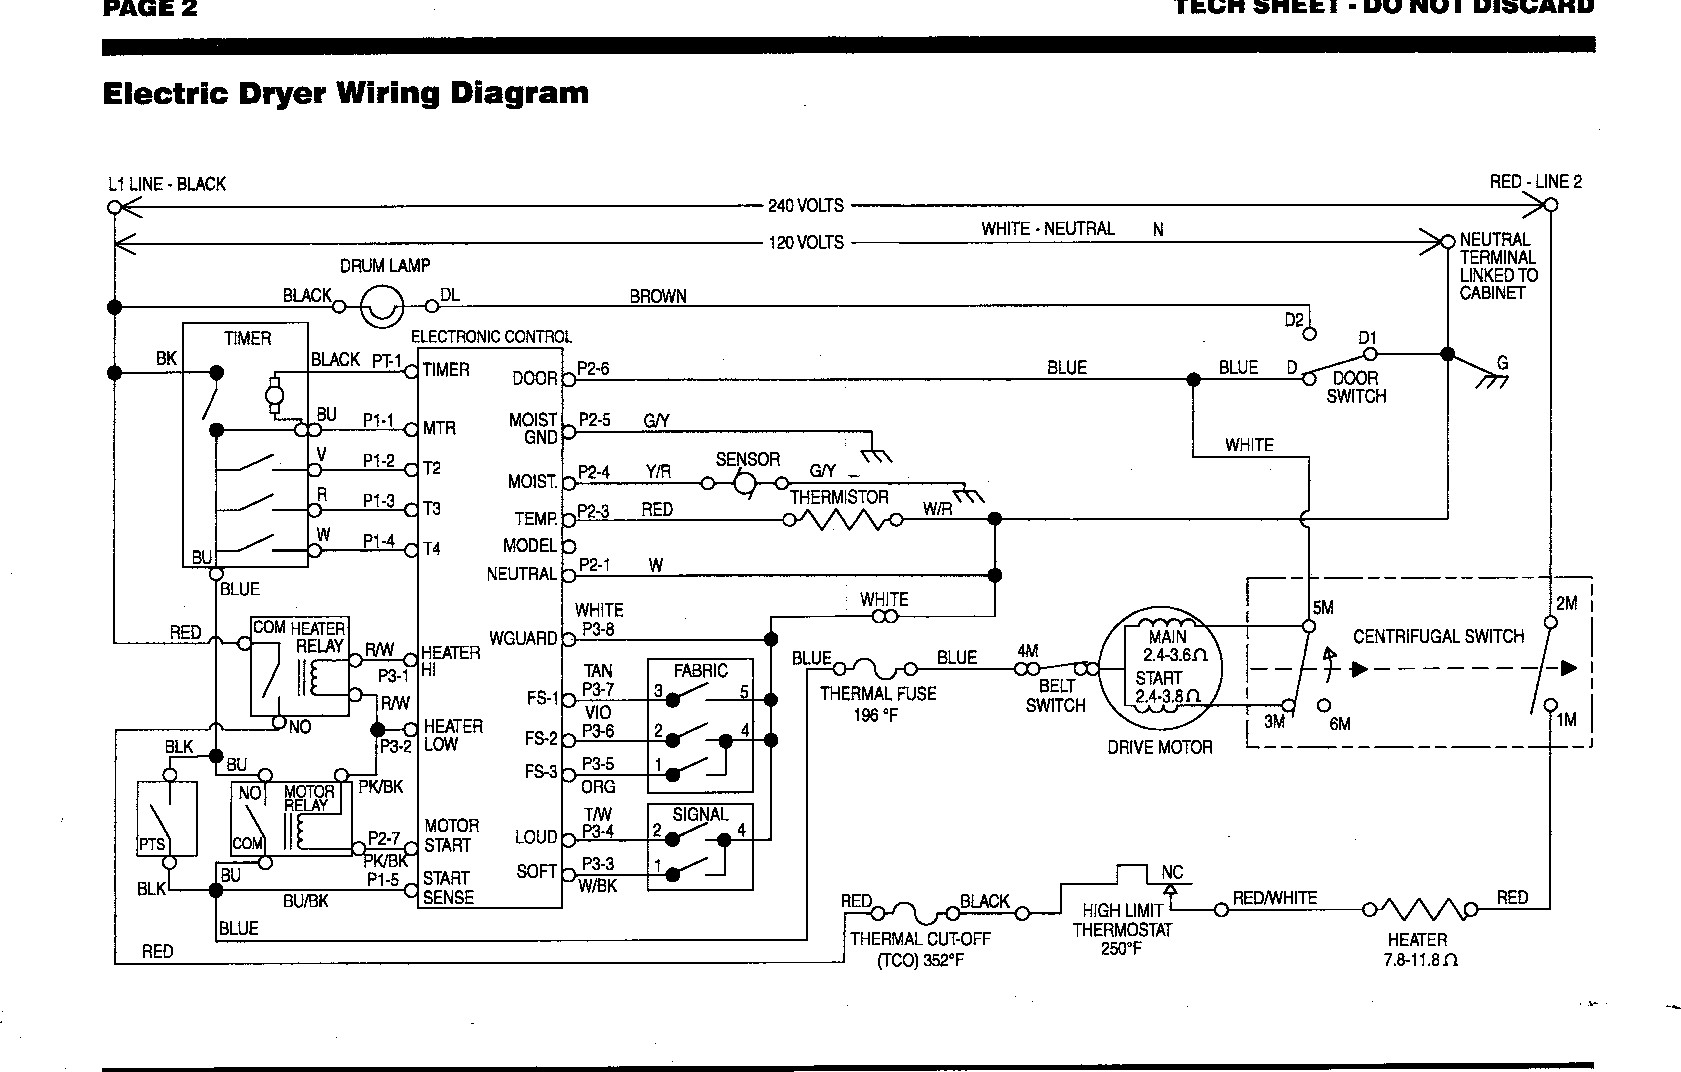 kenmore dryer wiring diagram Download-Clothes Dryer Wiring Diagram Inside Gansoukin Me And Electric Kenmore 1 12-c